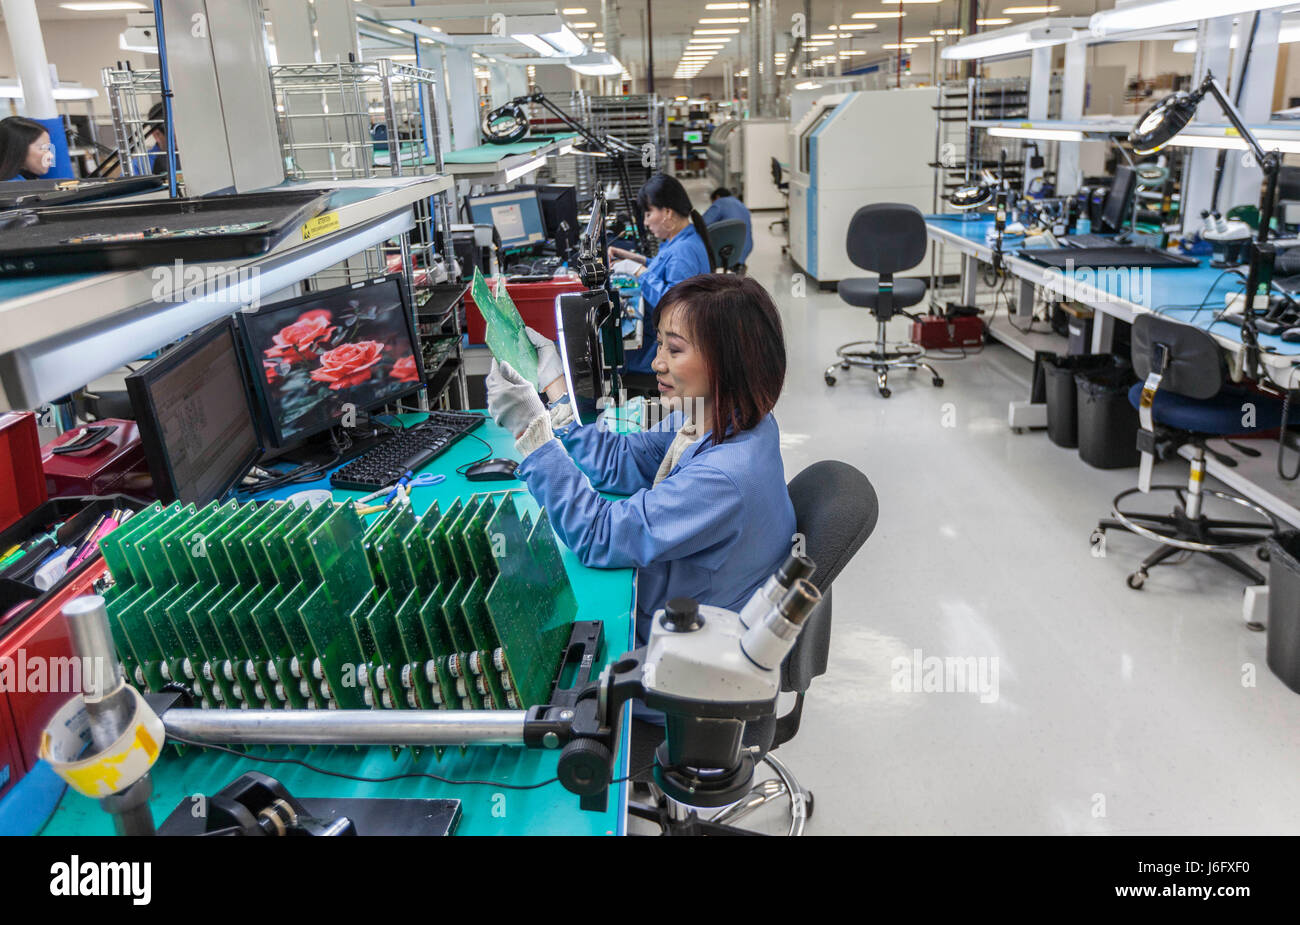 Feb 18, 2011 - Fremont, California, U.S. - SeaMicro Inc. is thriving by focusing on a more mundane task: physically - Stock Image